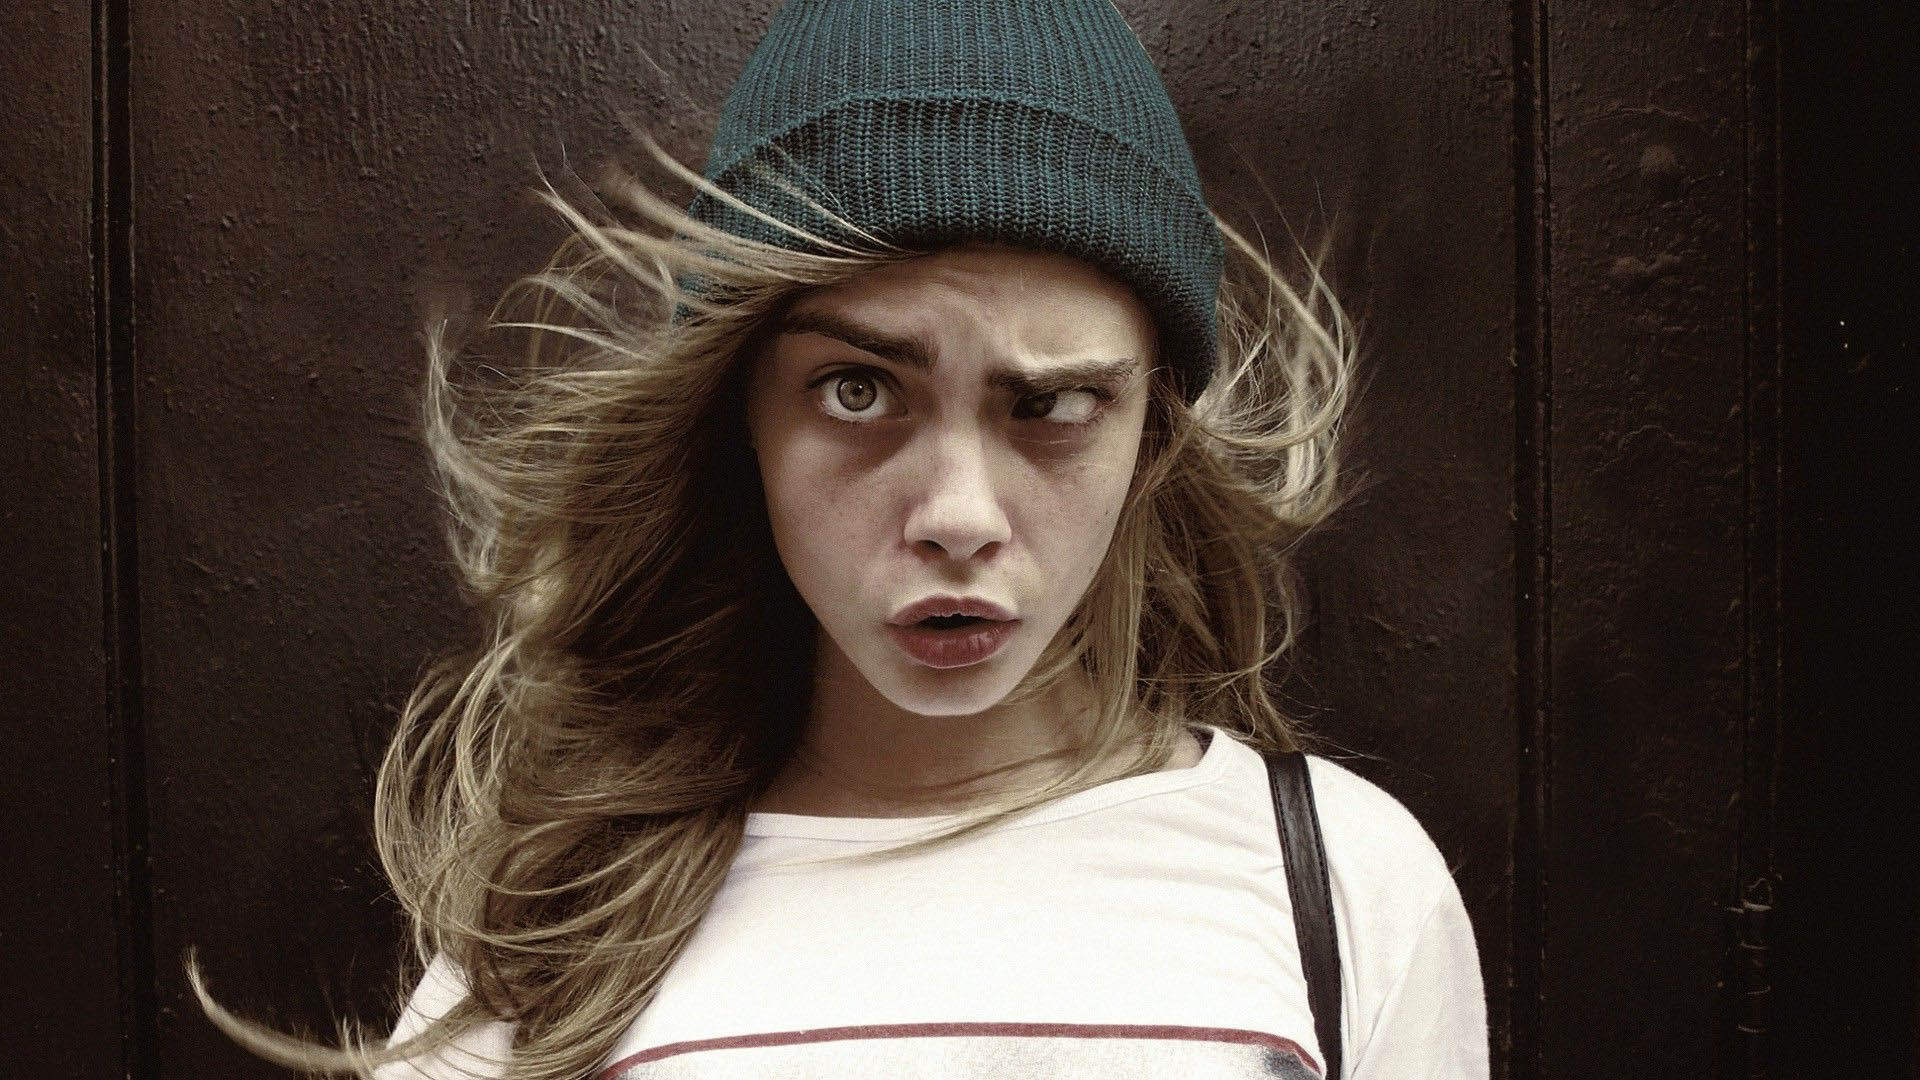 Cara Delevingne in cap squint the eye